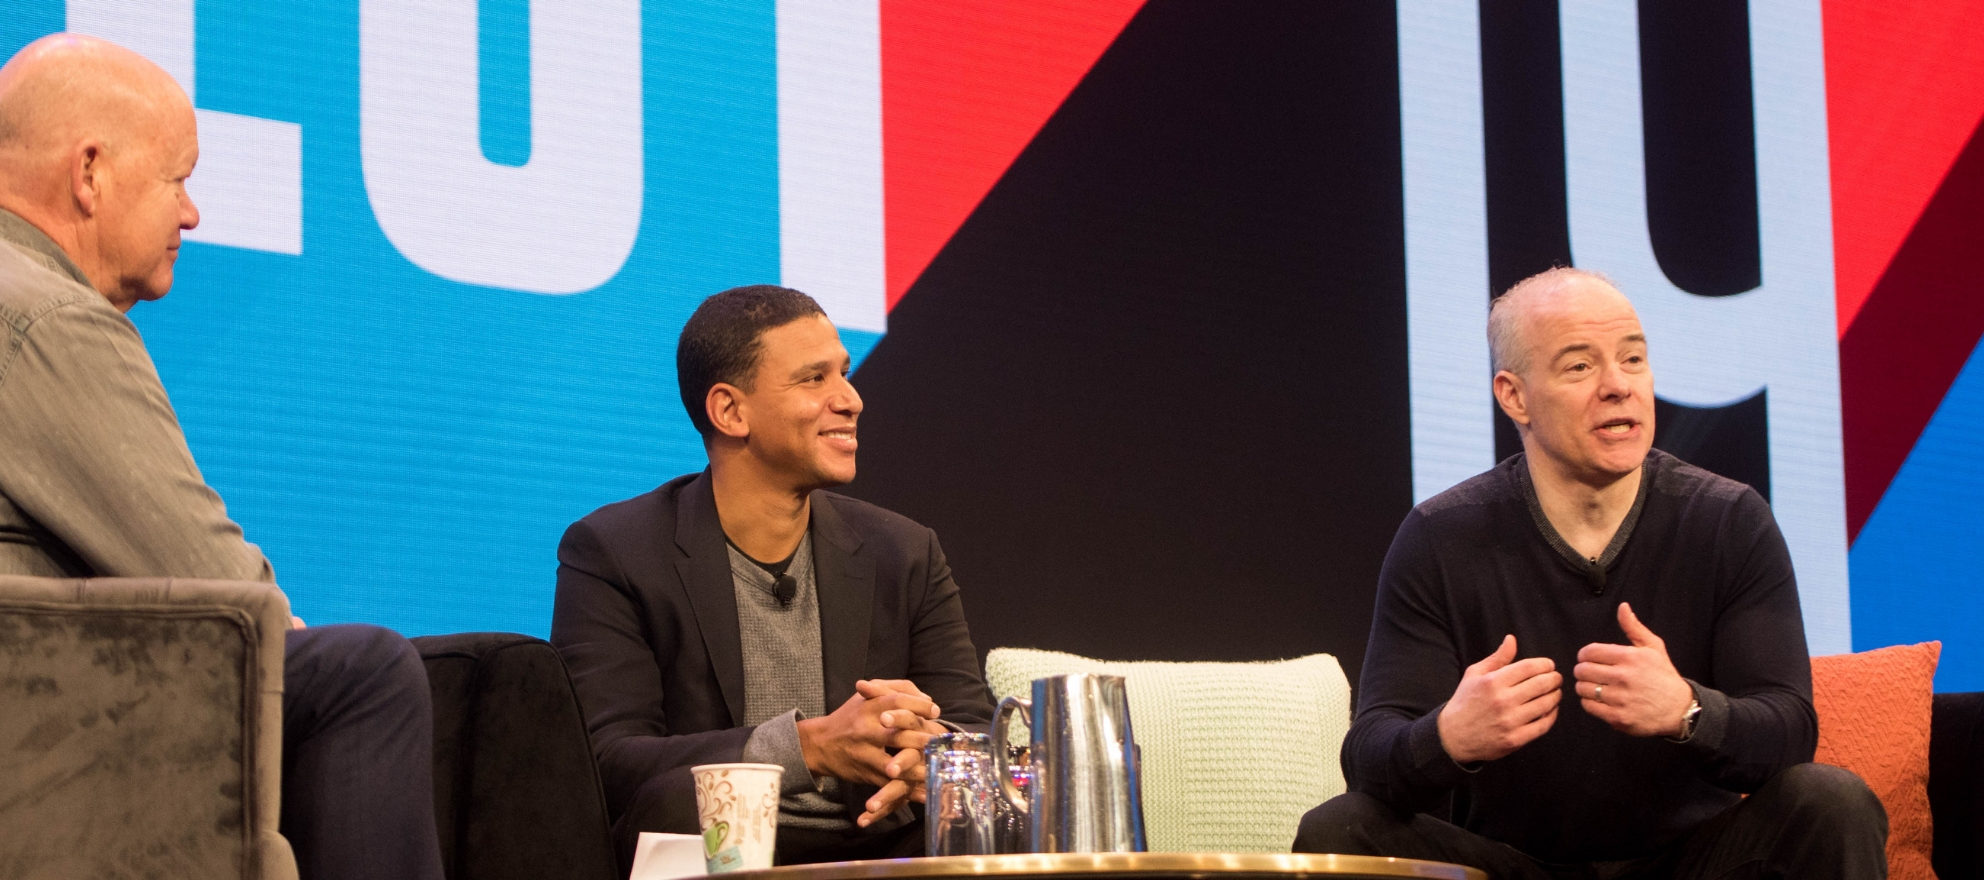 The 6 loudest topics at Inman Connect New York 2019